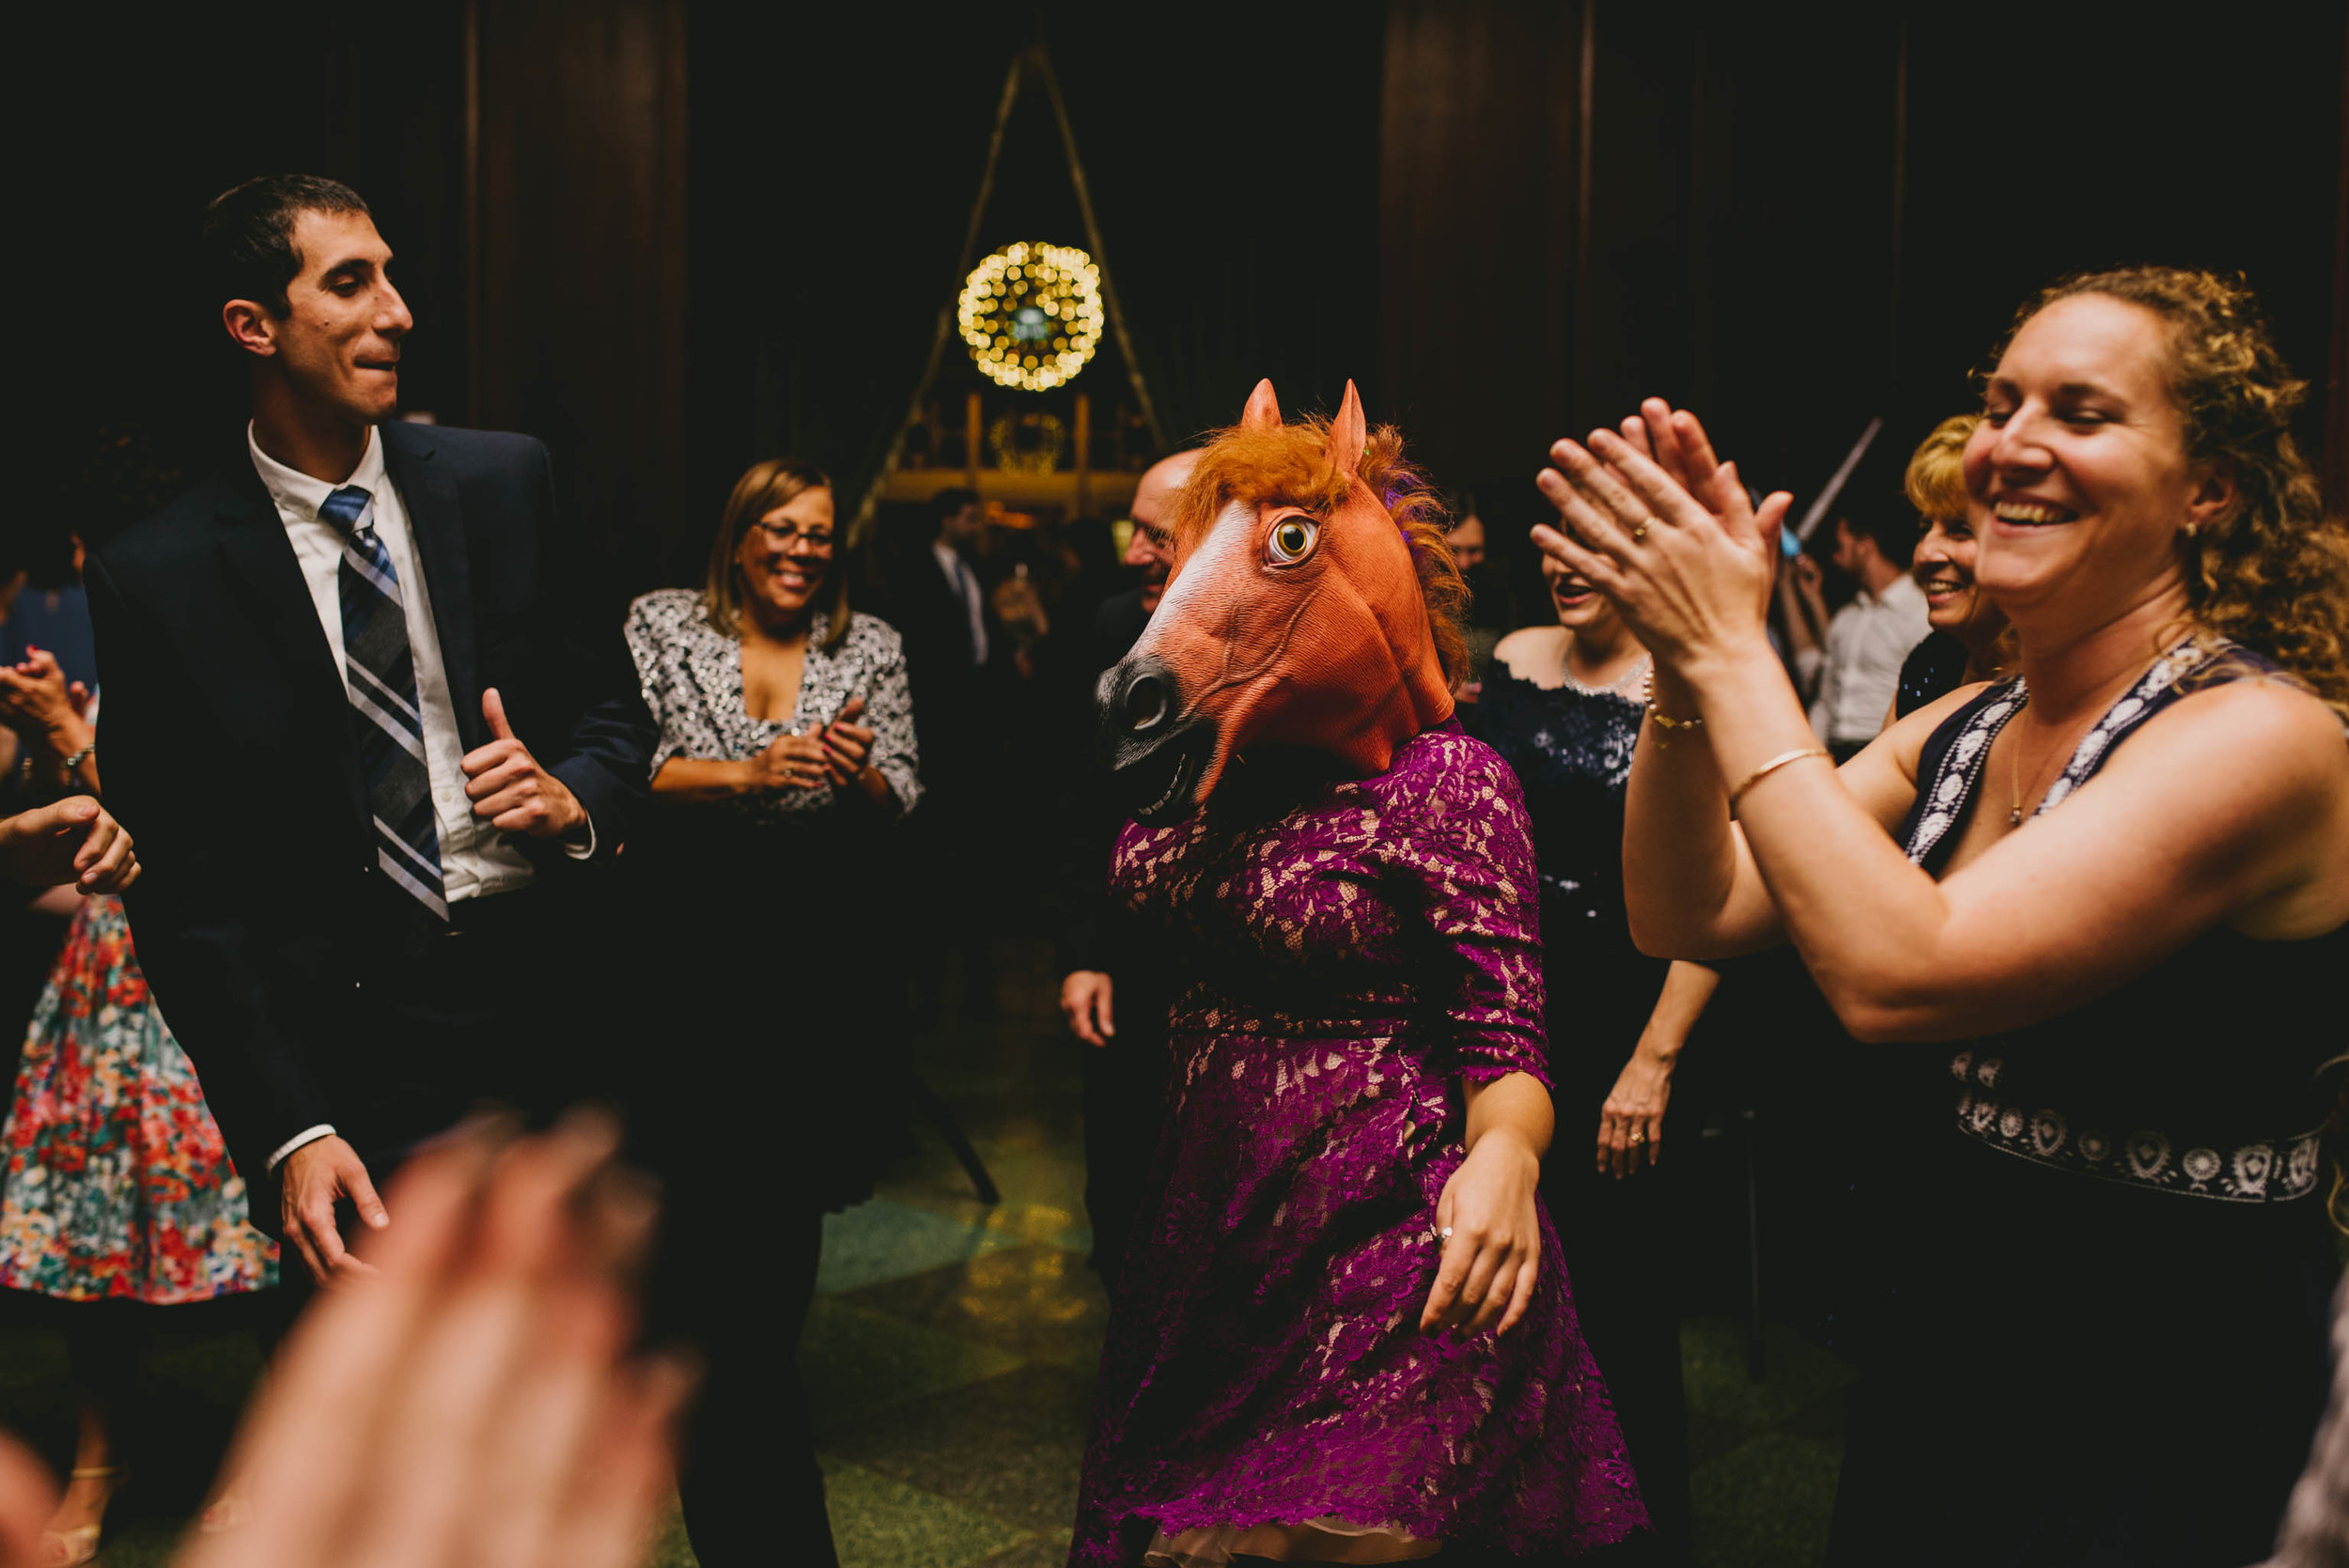 21c-hotel-durham-offbeat-wedding-horse-head.jpg